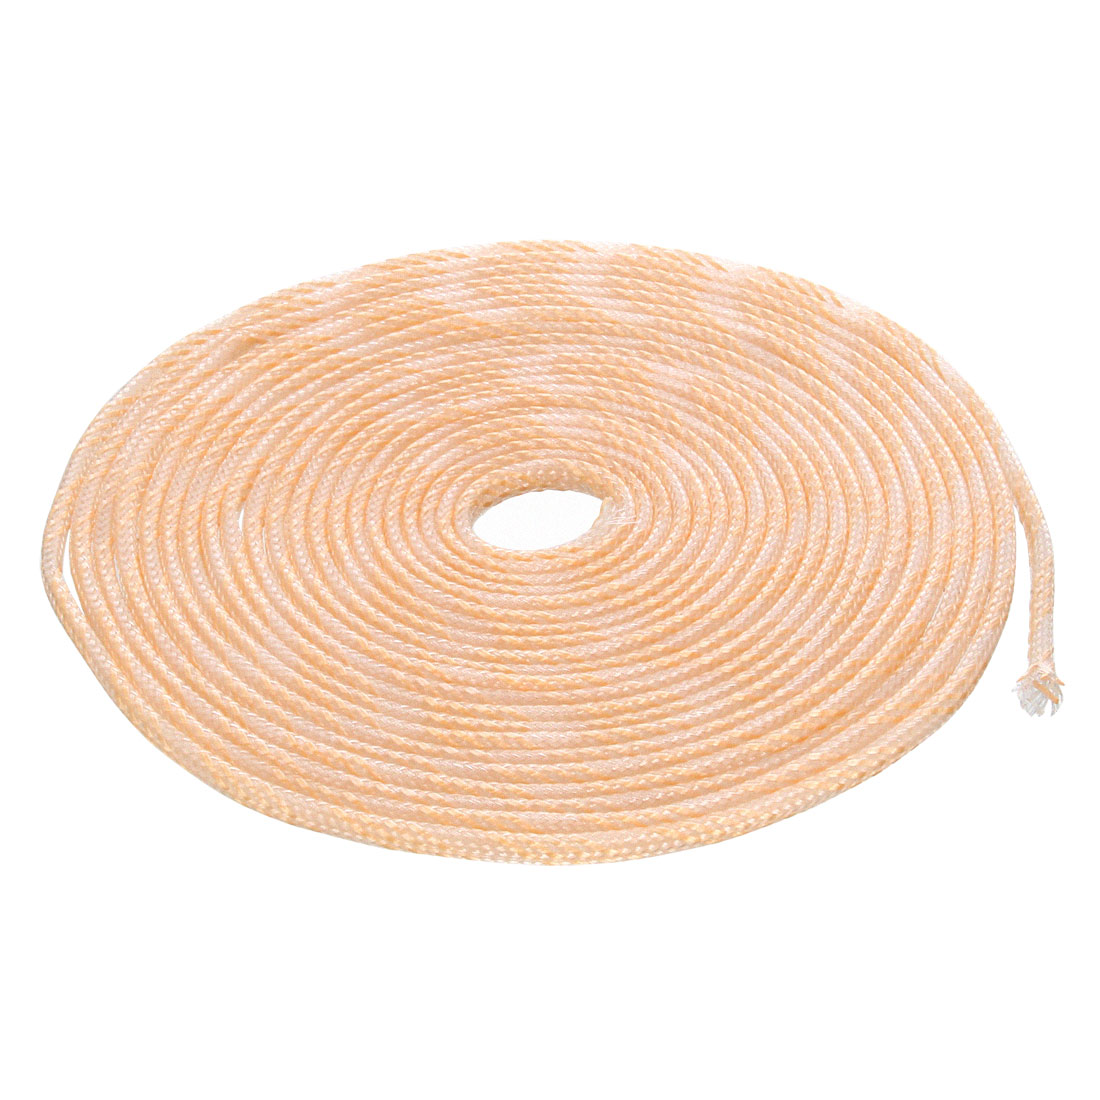 3mm Dia Tight Braided PET Sleeving Cable Wrap Sheath Transparent Orange 16Ft